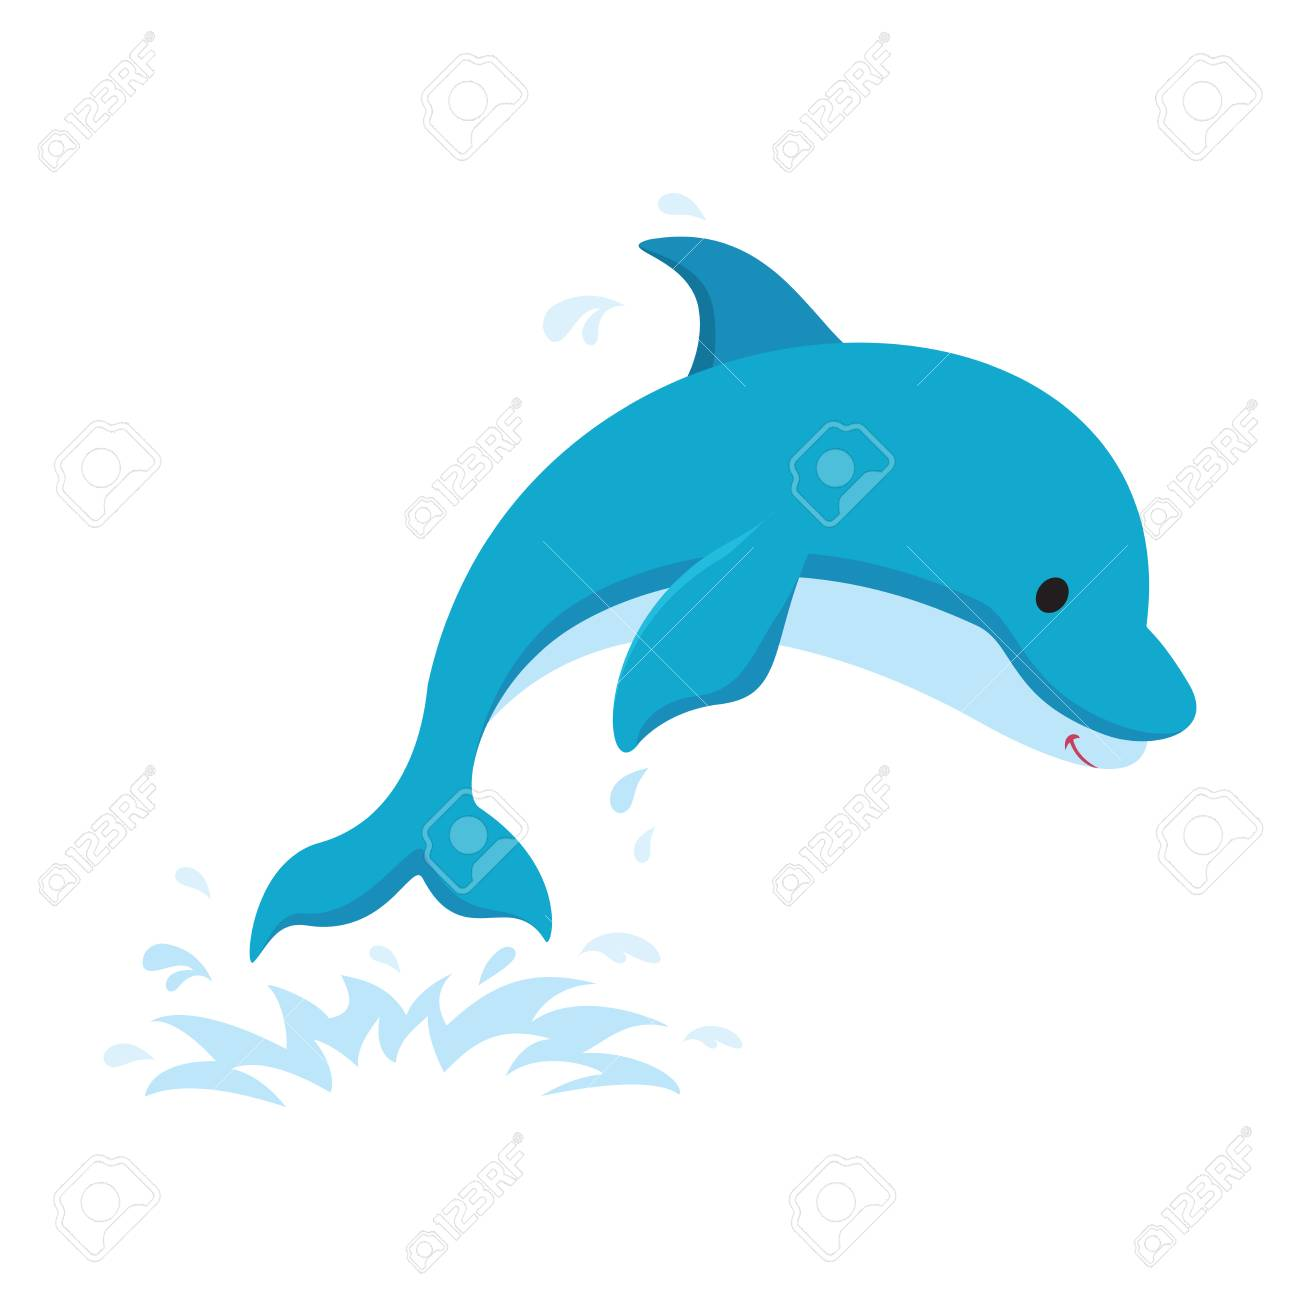 dolphin jumping out of water.